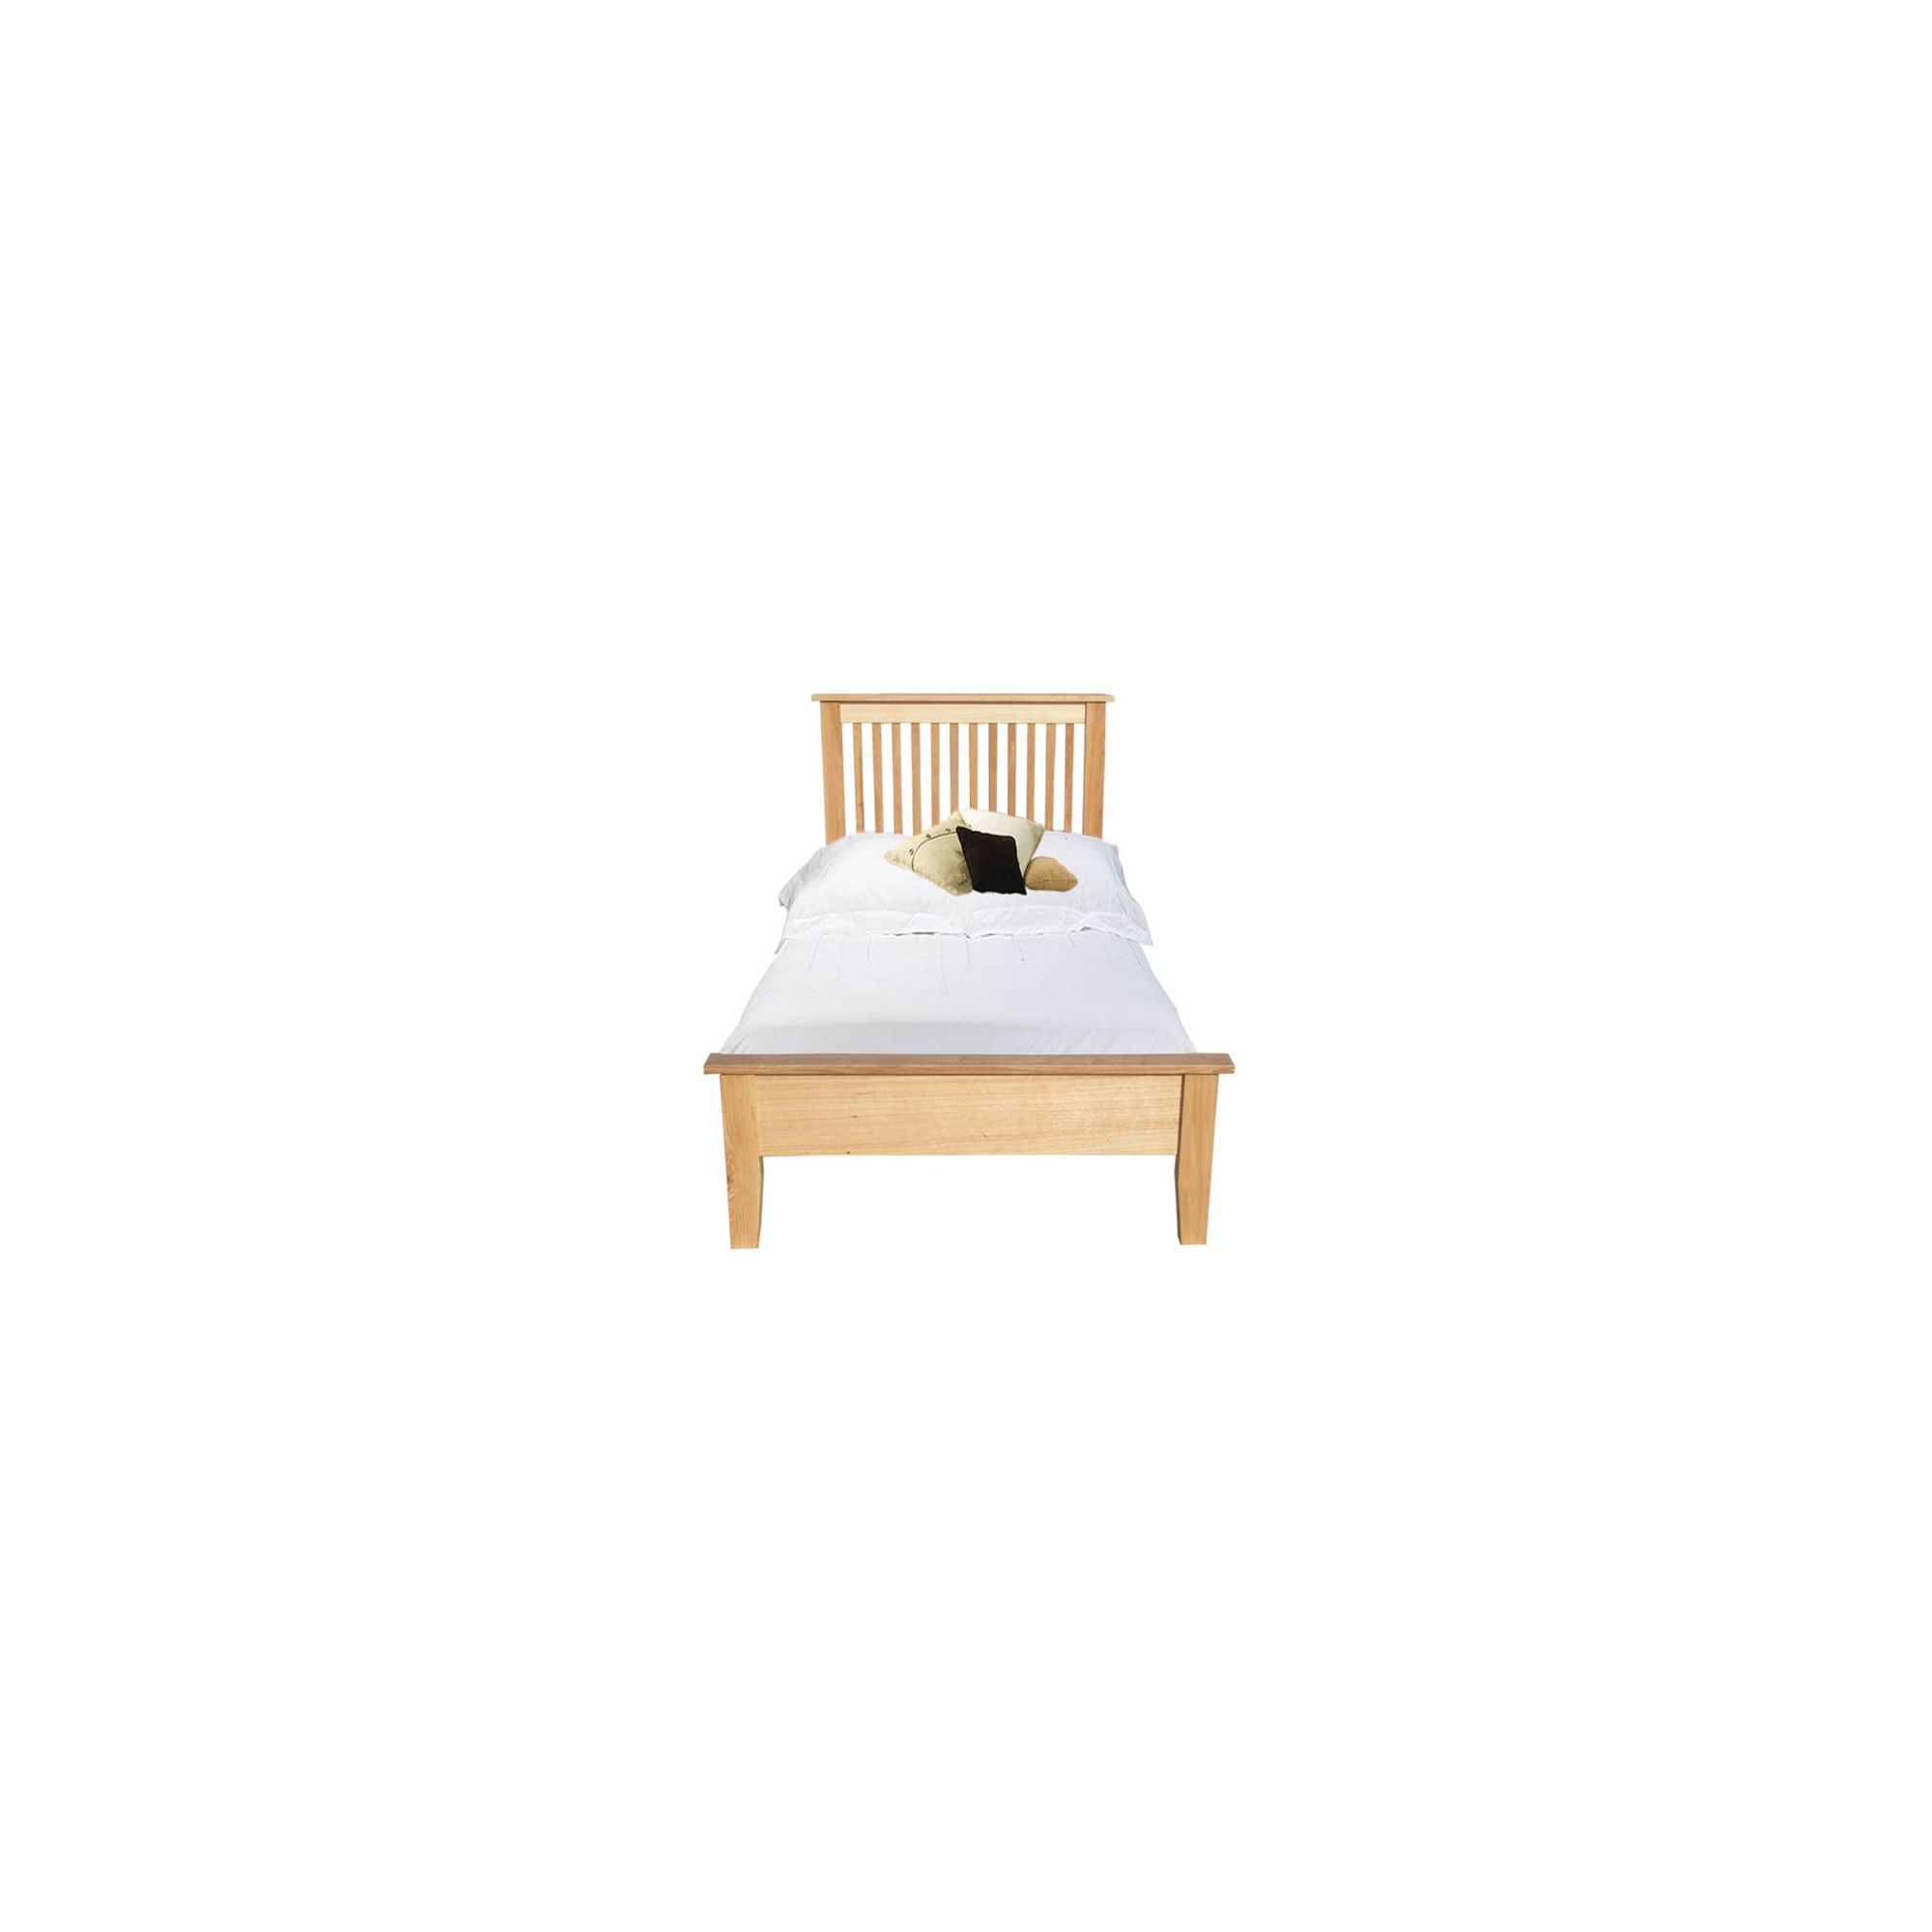 Home Zone Furniture Lincoln Bed Frame - Single at Tesco Direct